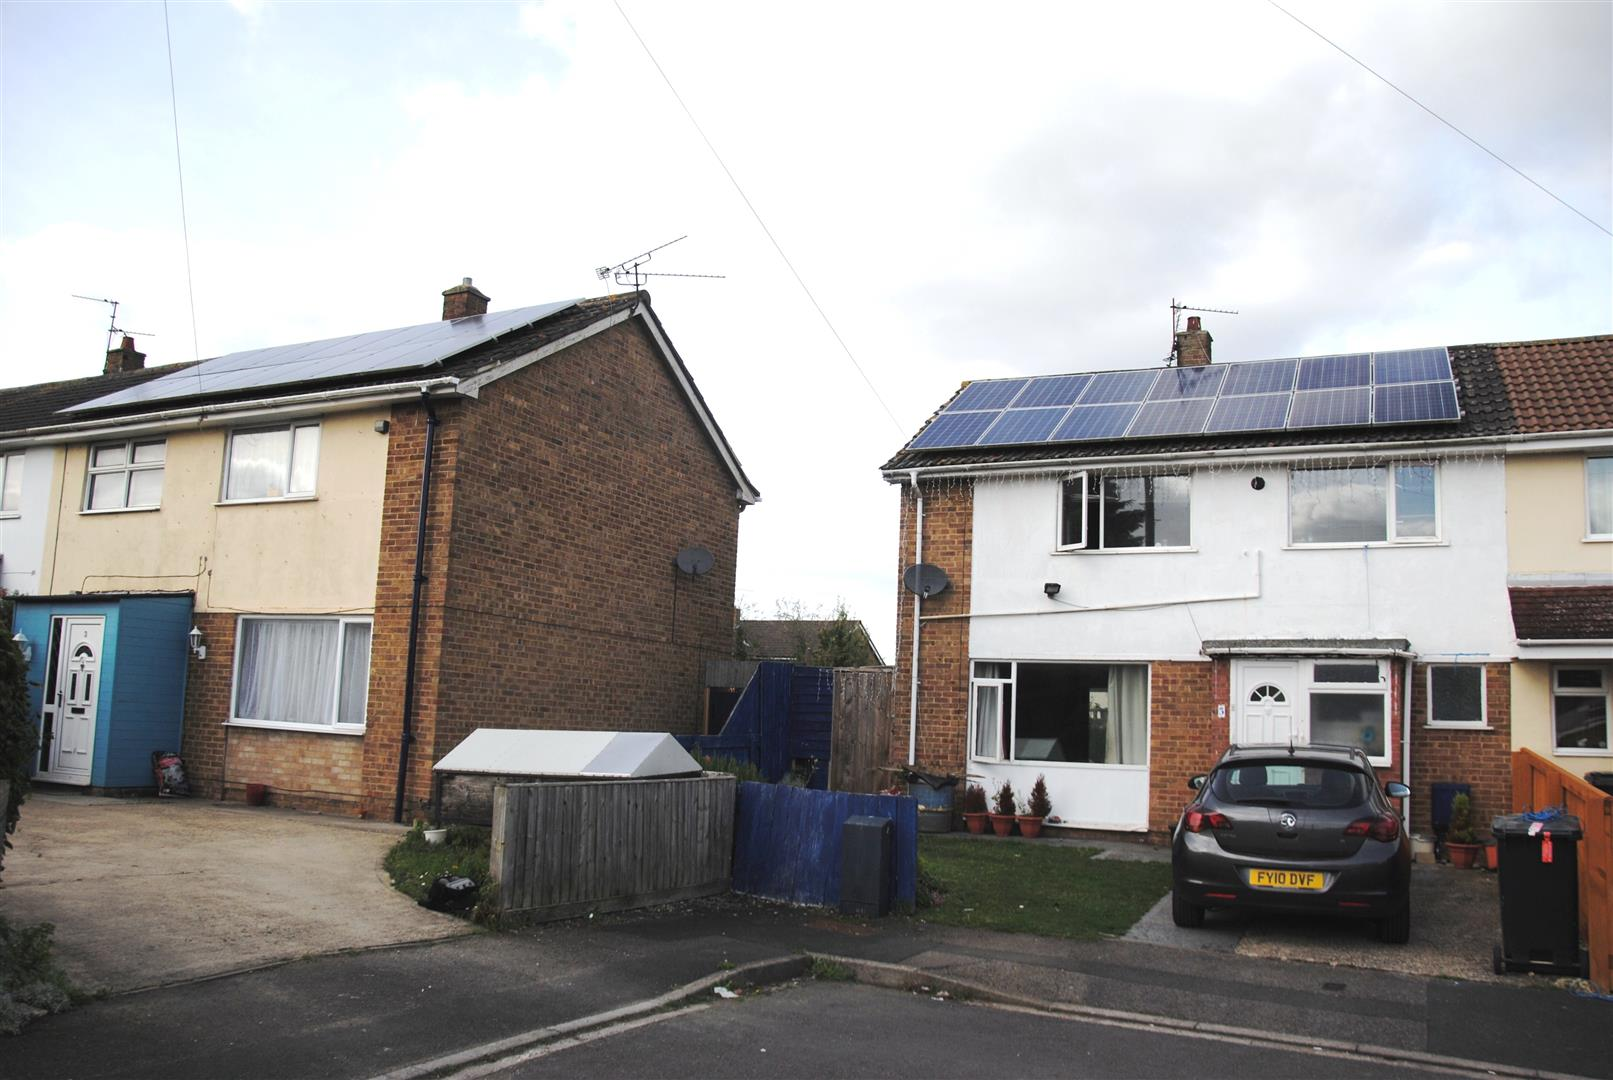 3 Bedrooms End Of Terrace House for sale in Norcliffe Road, Park, Swindon